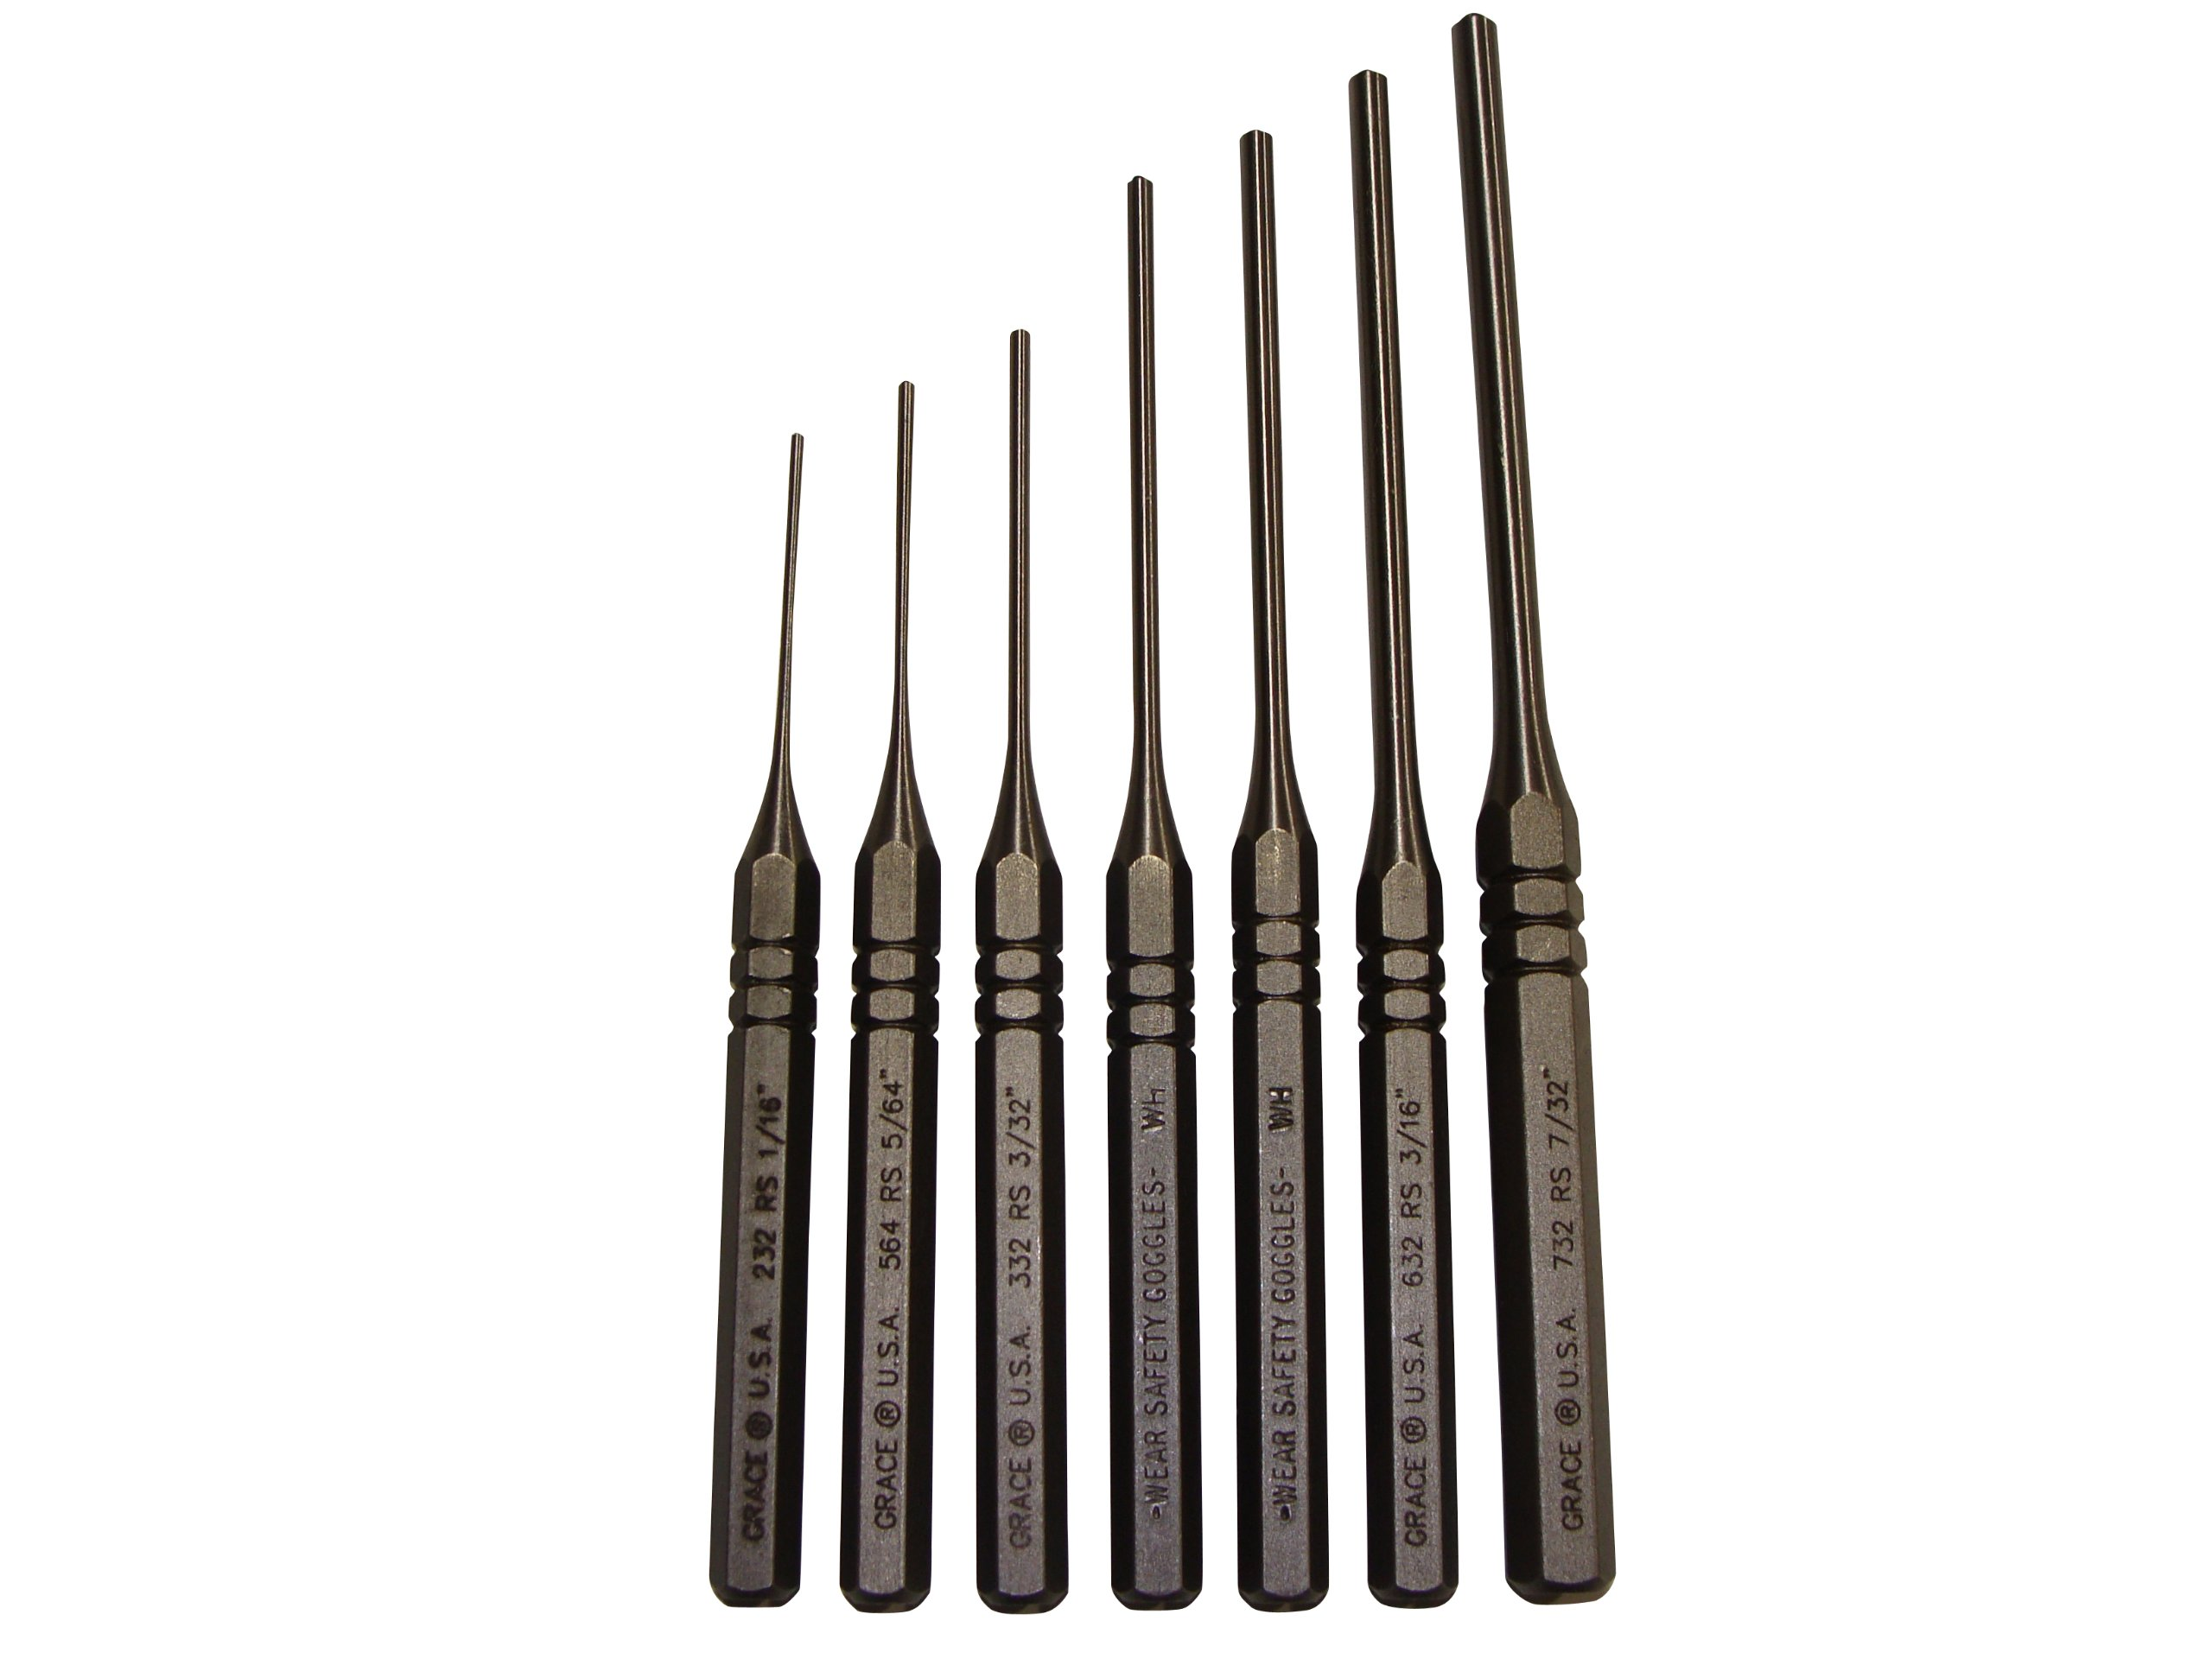 Grace USA - Steel Roll Spring Punch Set - RS7 - Gunsmithing - Steel Punches - 7 piece - Gunsmith Tools & Accessories by Grace USA